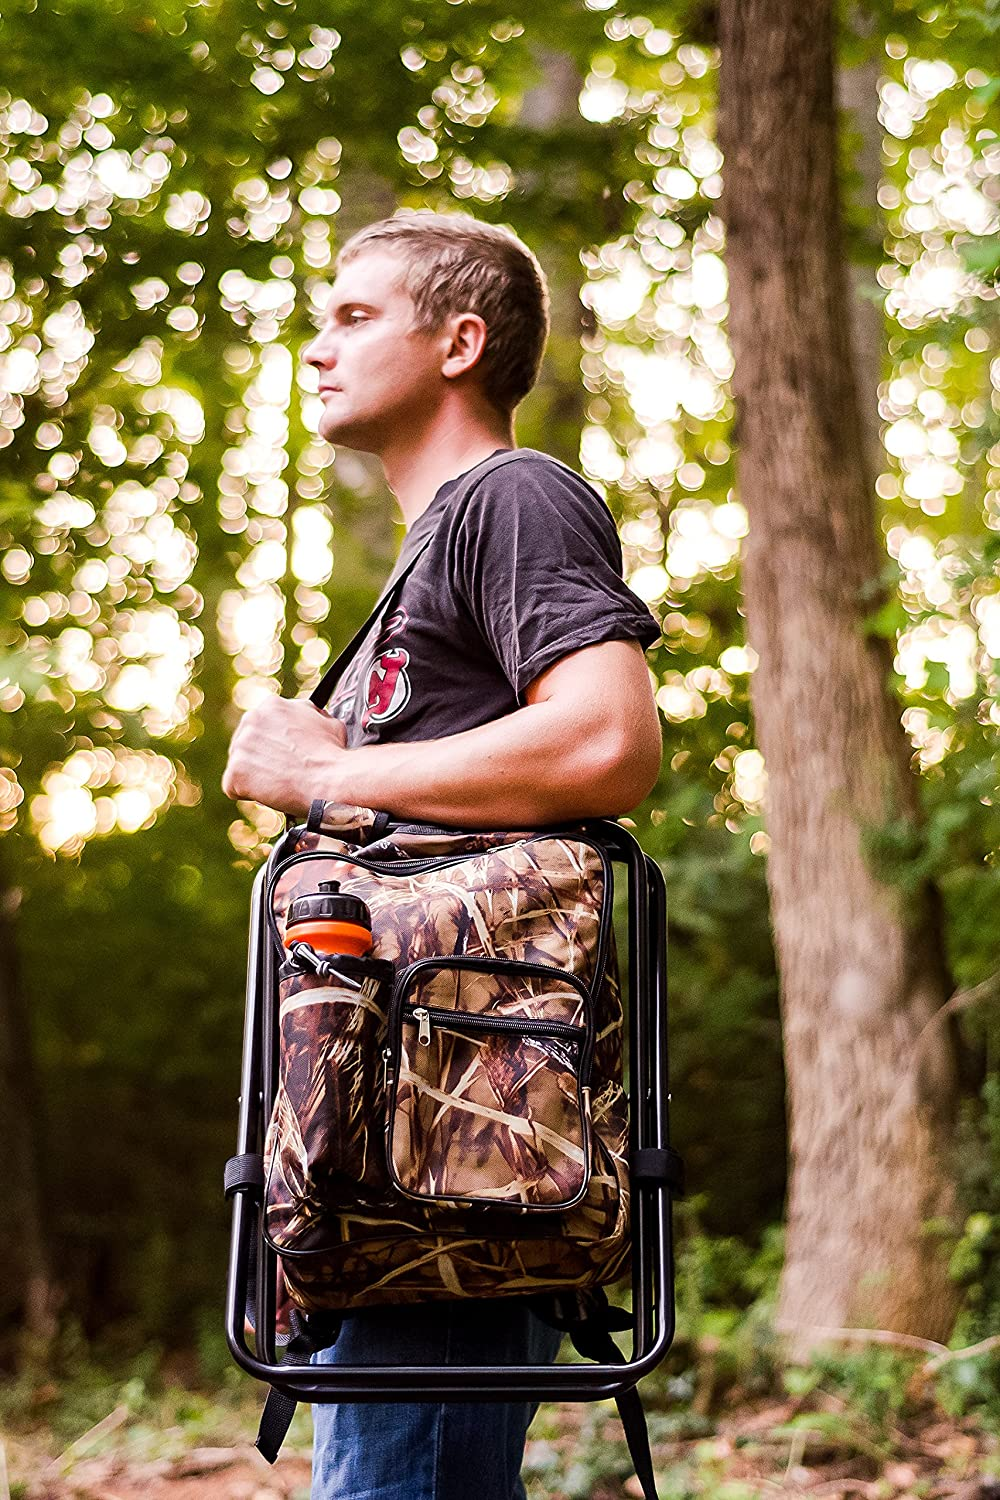 Camco Folding Camping Stool Backpack Cooler Trio- Camping//Hiking Bag with Waterproof Insulated Cooler Pockets and Sturdy Legs for Seating 51908 Great For Travel Camouflage